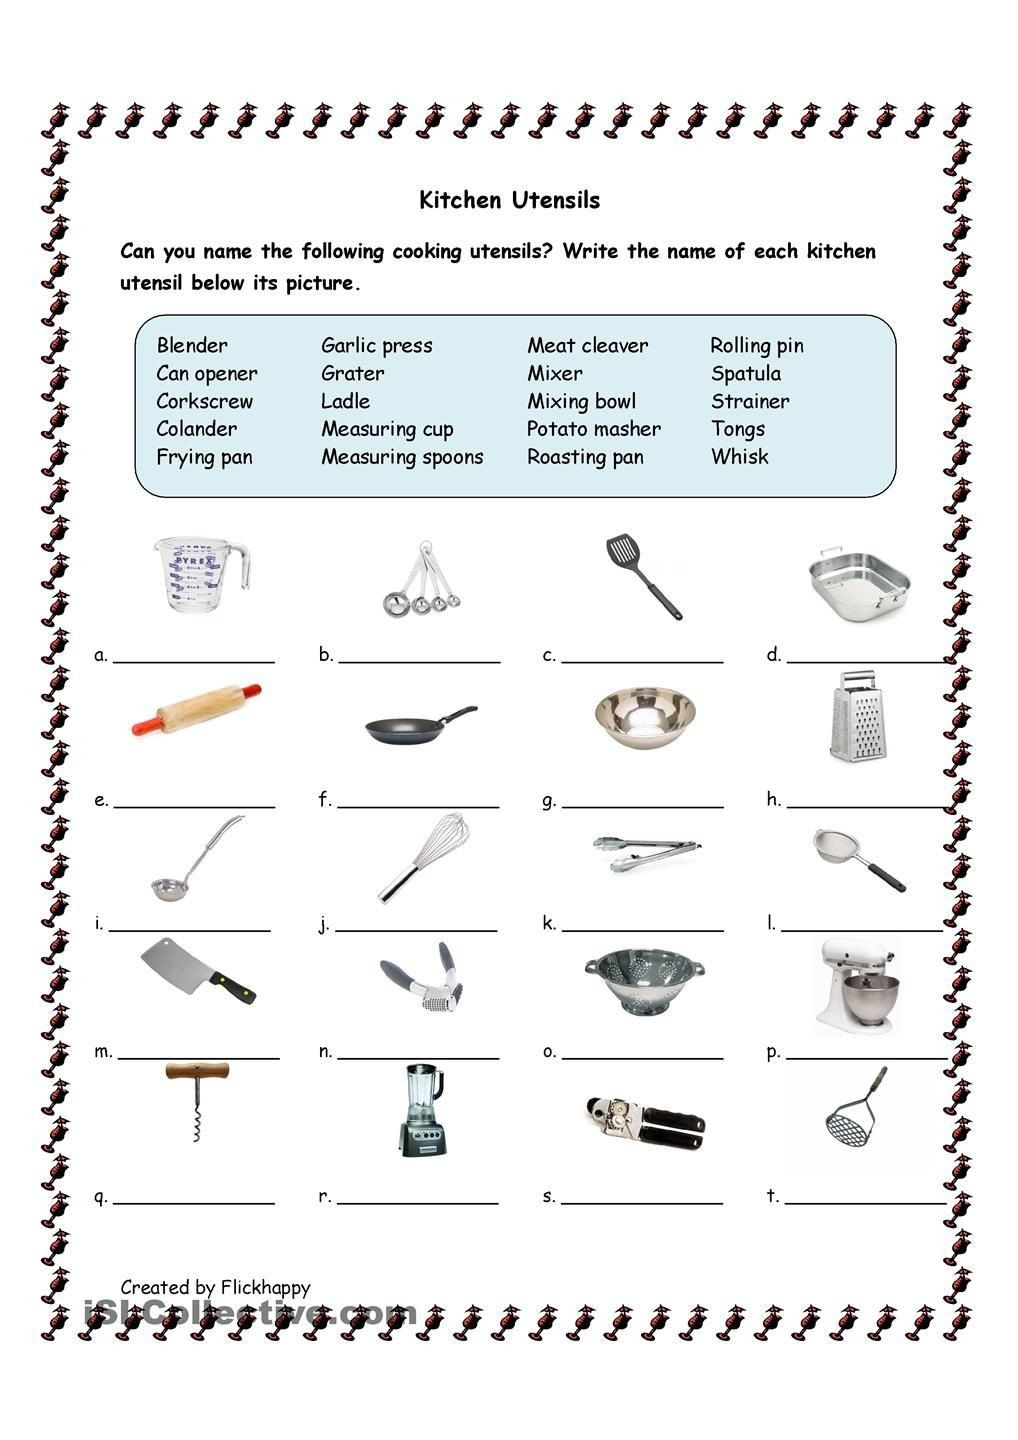 Third Grade Economics Worksheets Kitchen Utensils With Life Skills Classroom Cooking In 2020 Life Skills Worksheets Free Math Worksheets